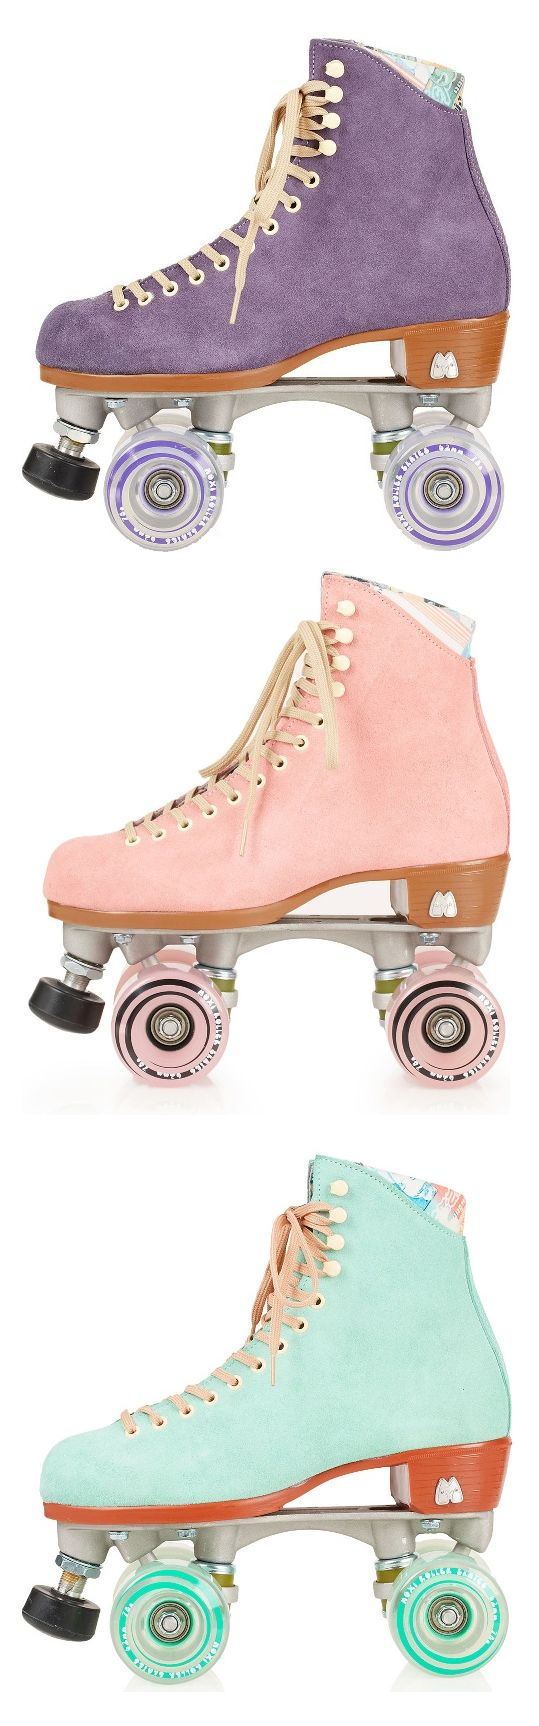 Roller skating hazel grove - 17 Best Images About Products I Love On Pinterest Radios Space Age And 1960s